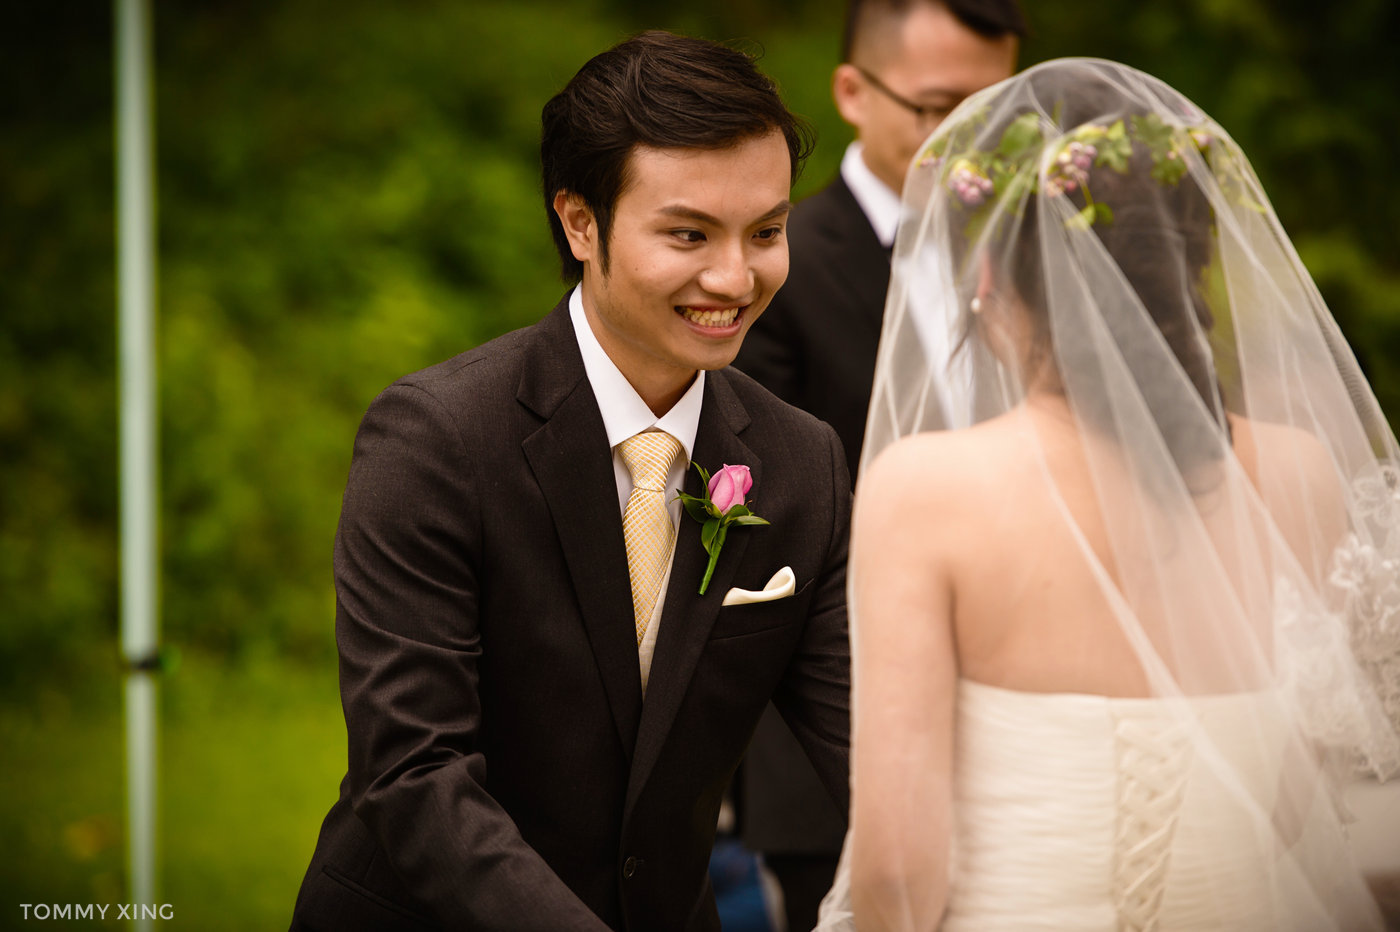 Seattle Wedding and pre wedding Los Angeles Tommy Xing Photography 西雅图洛杉矶旧金山婚礼婚纱照摄影师 090.jpg